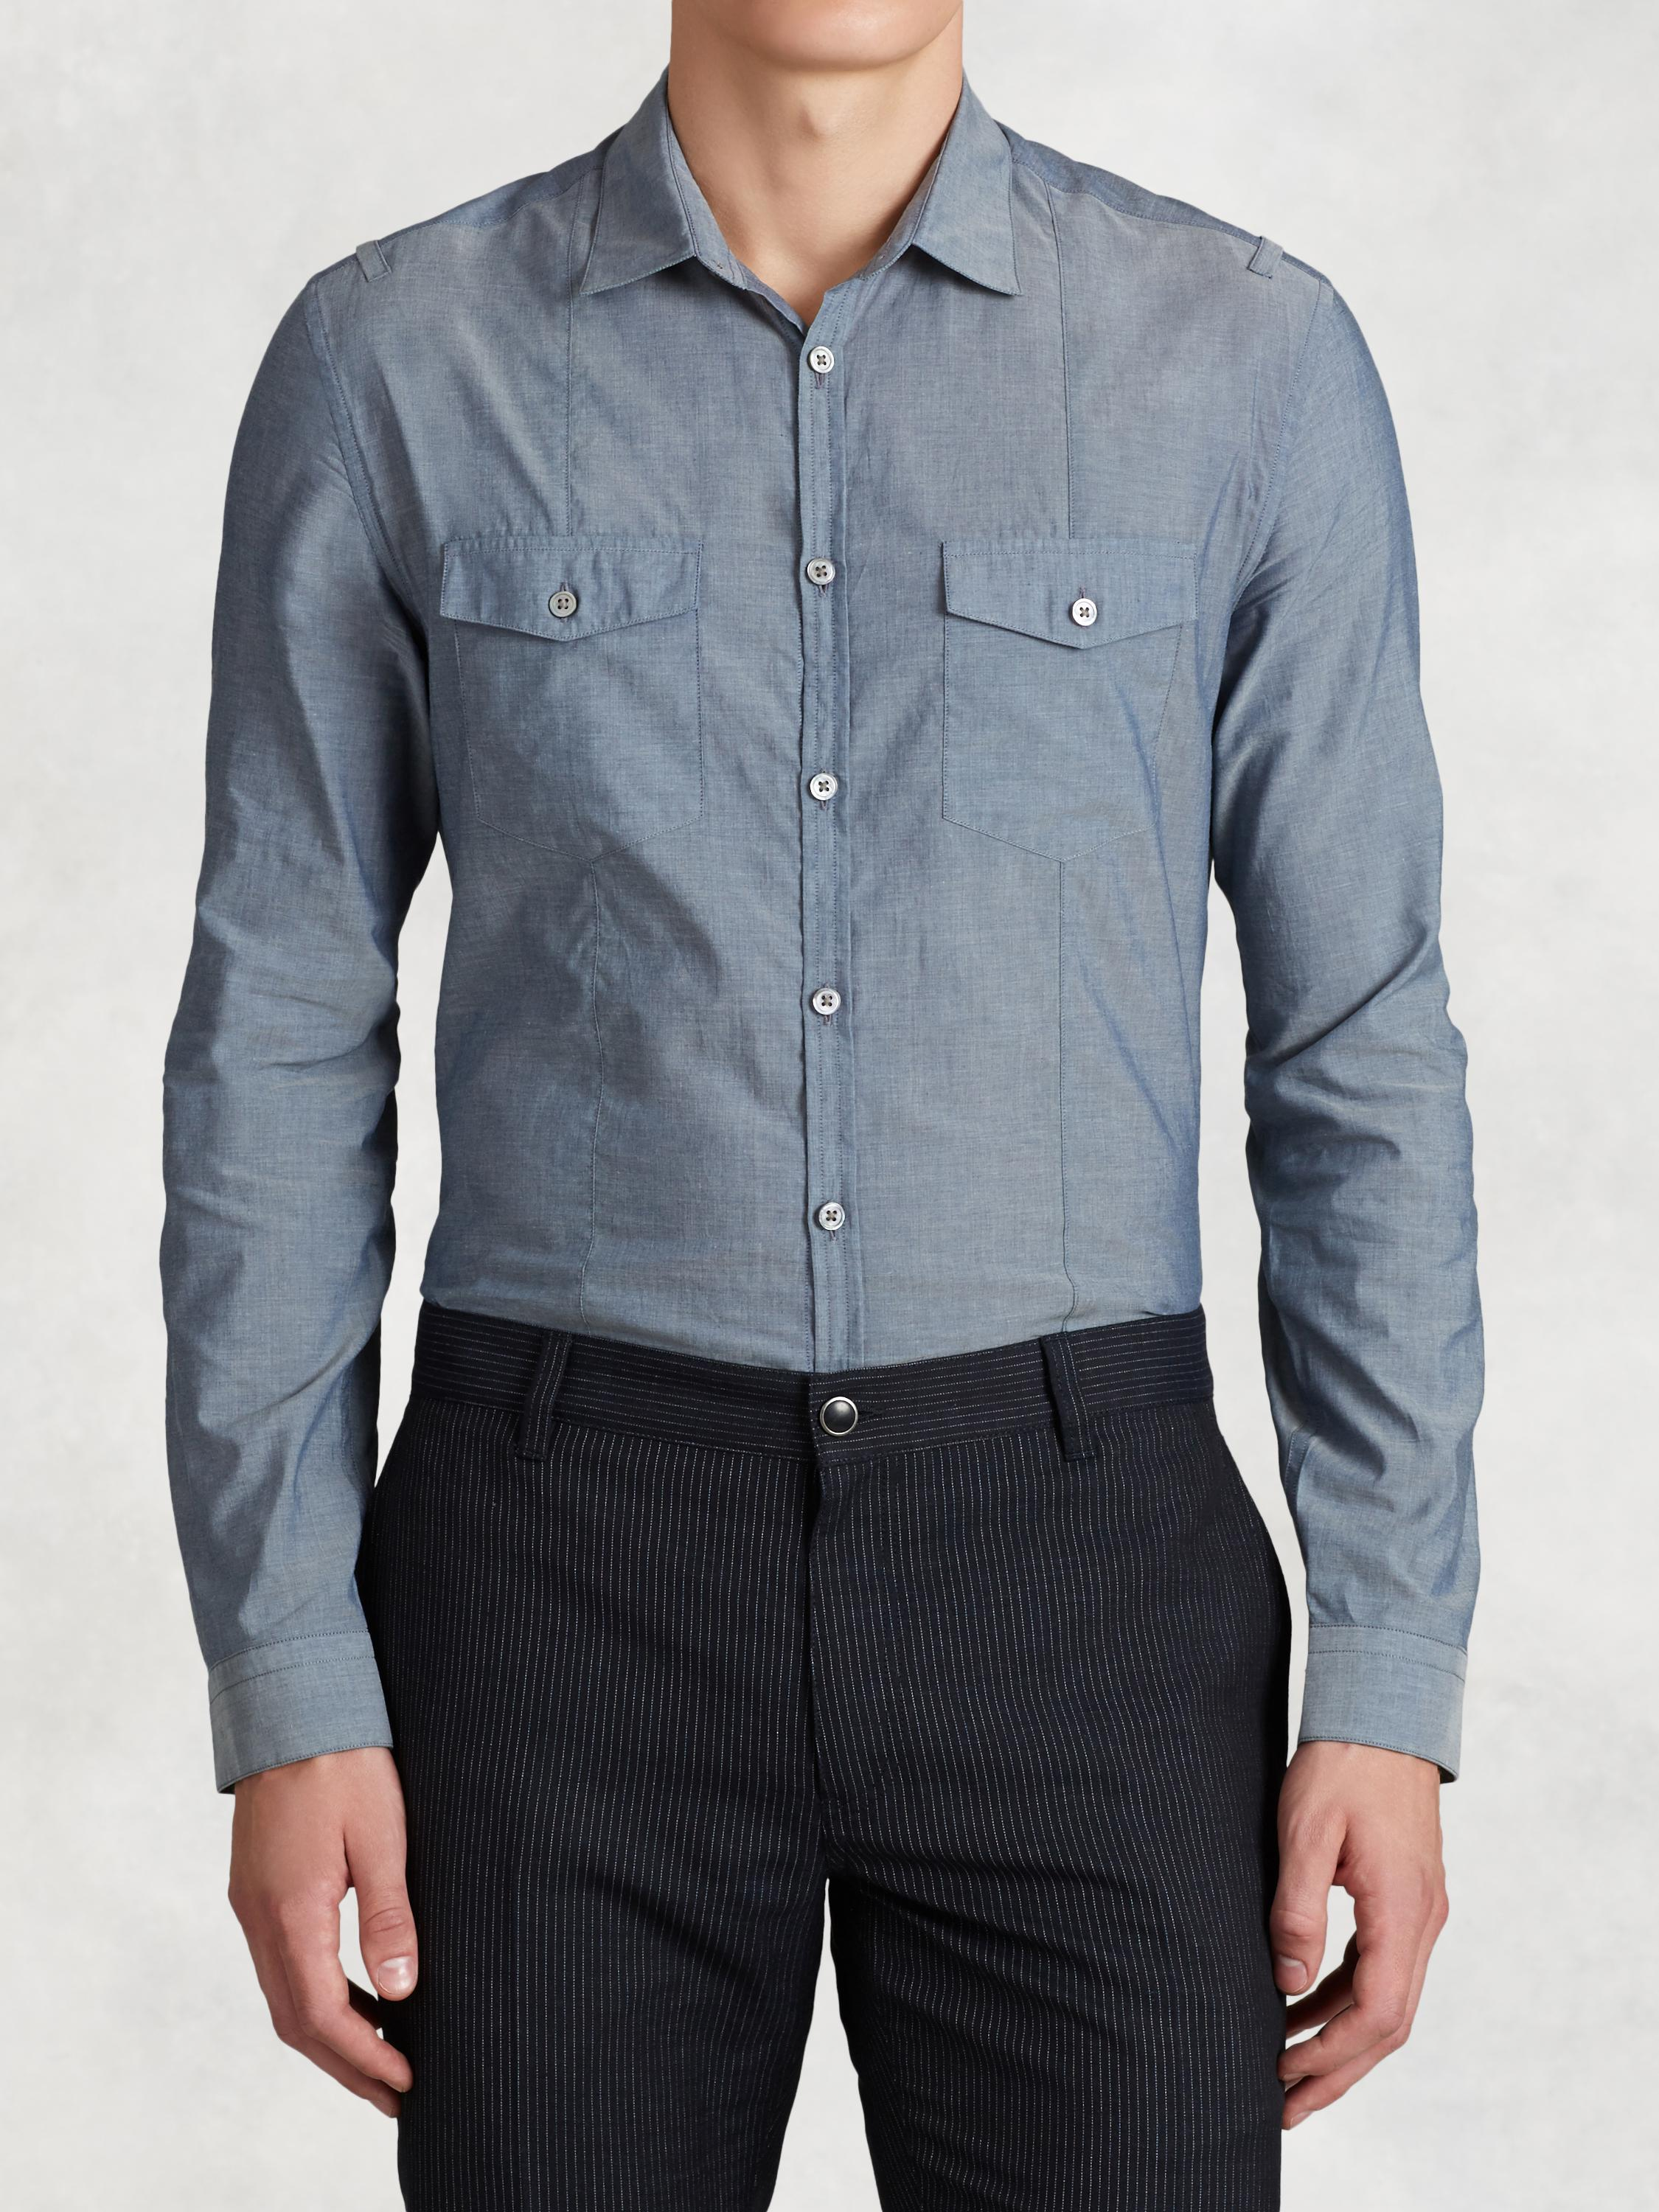 Cotton Denim Style Shirt